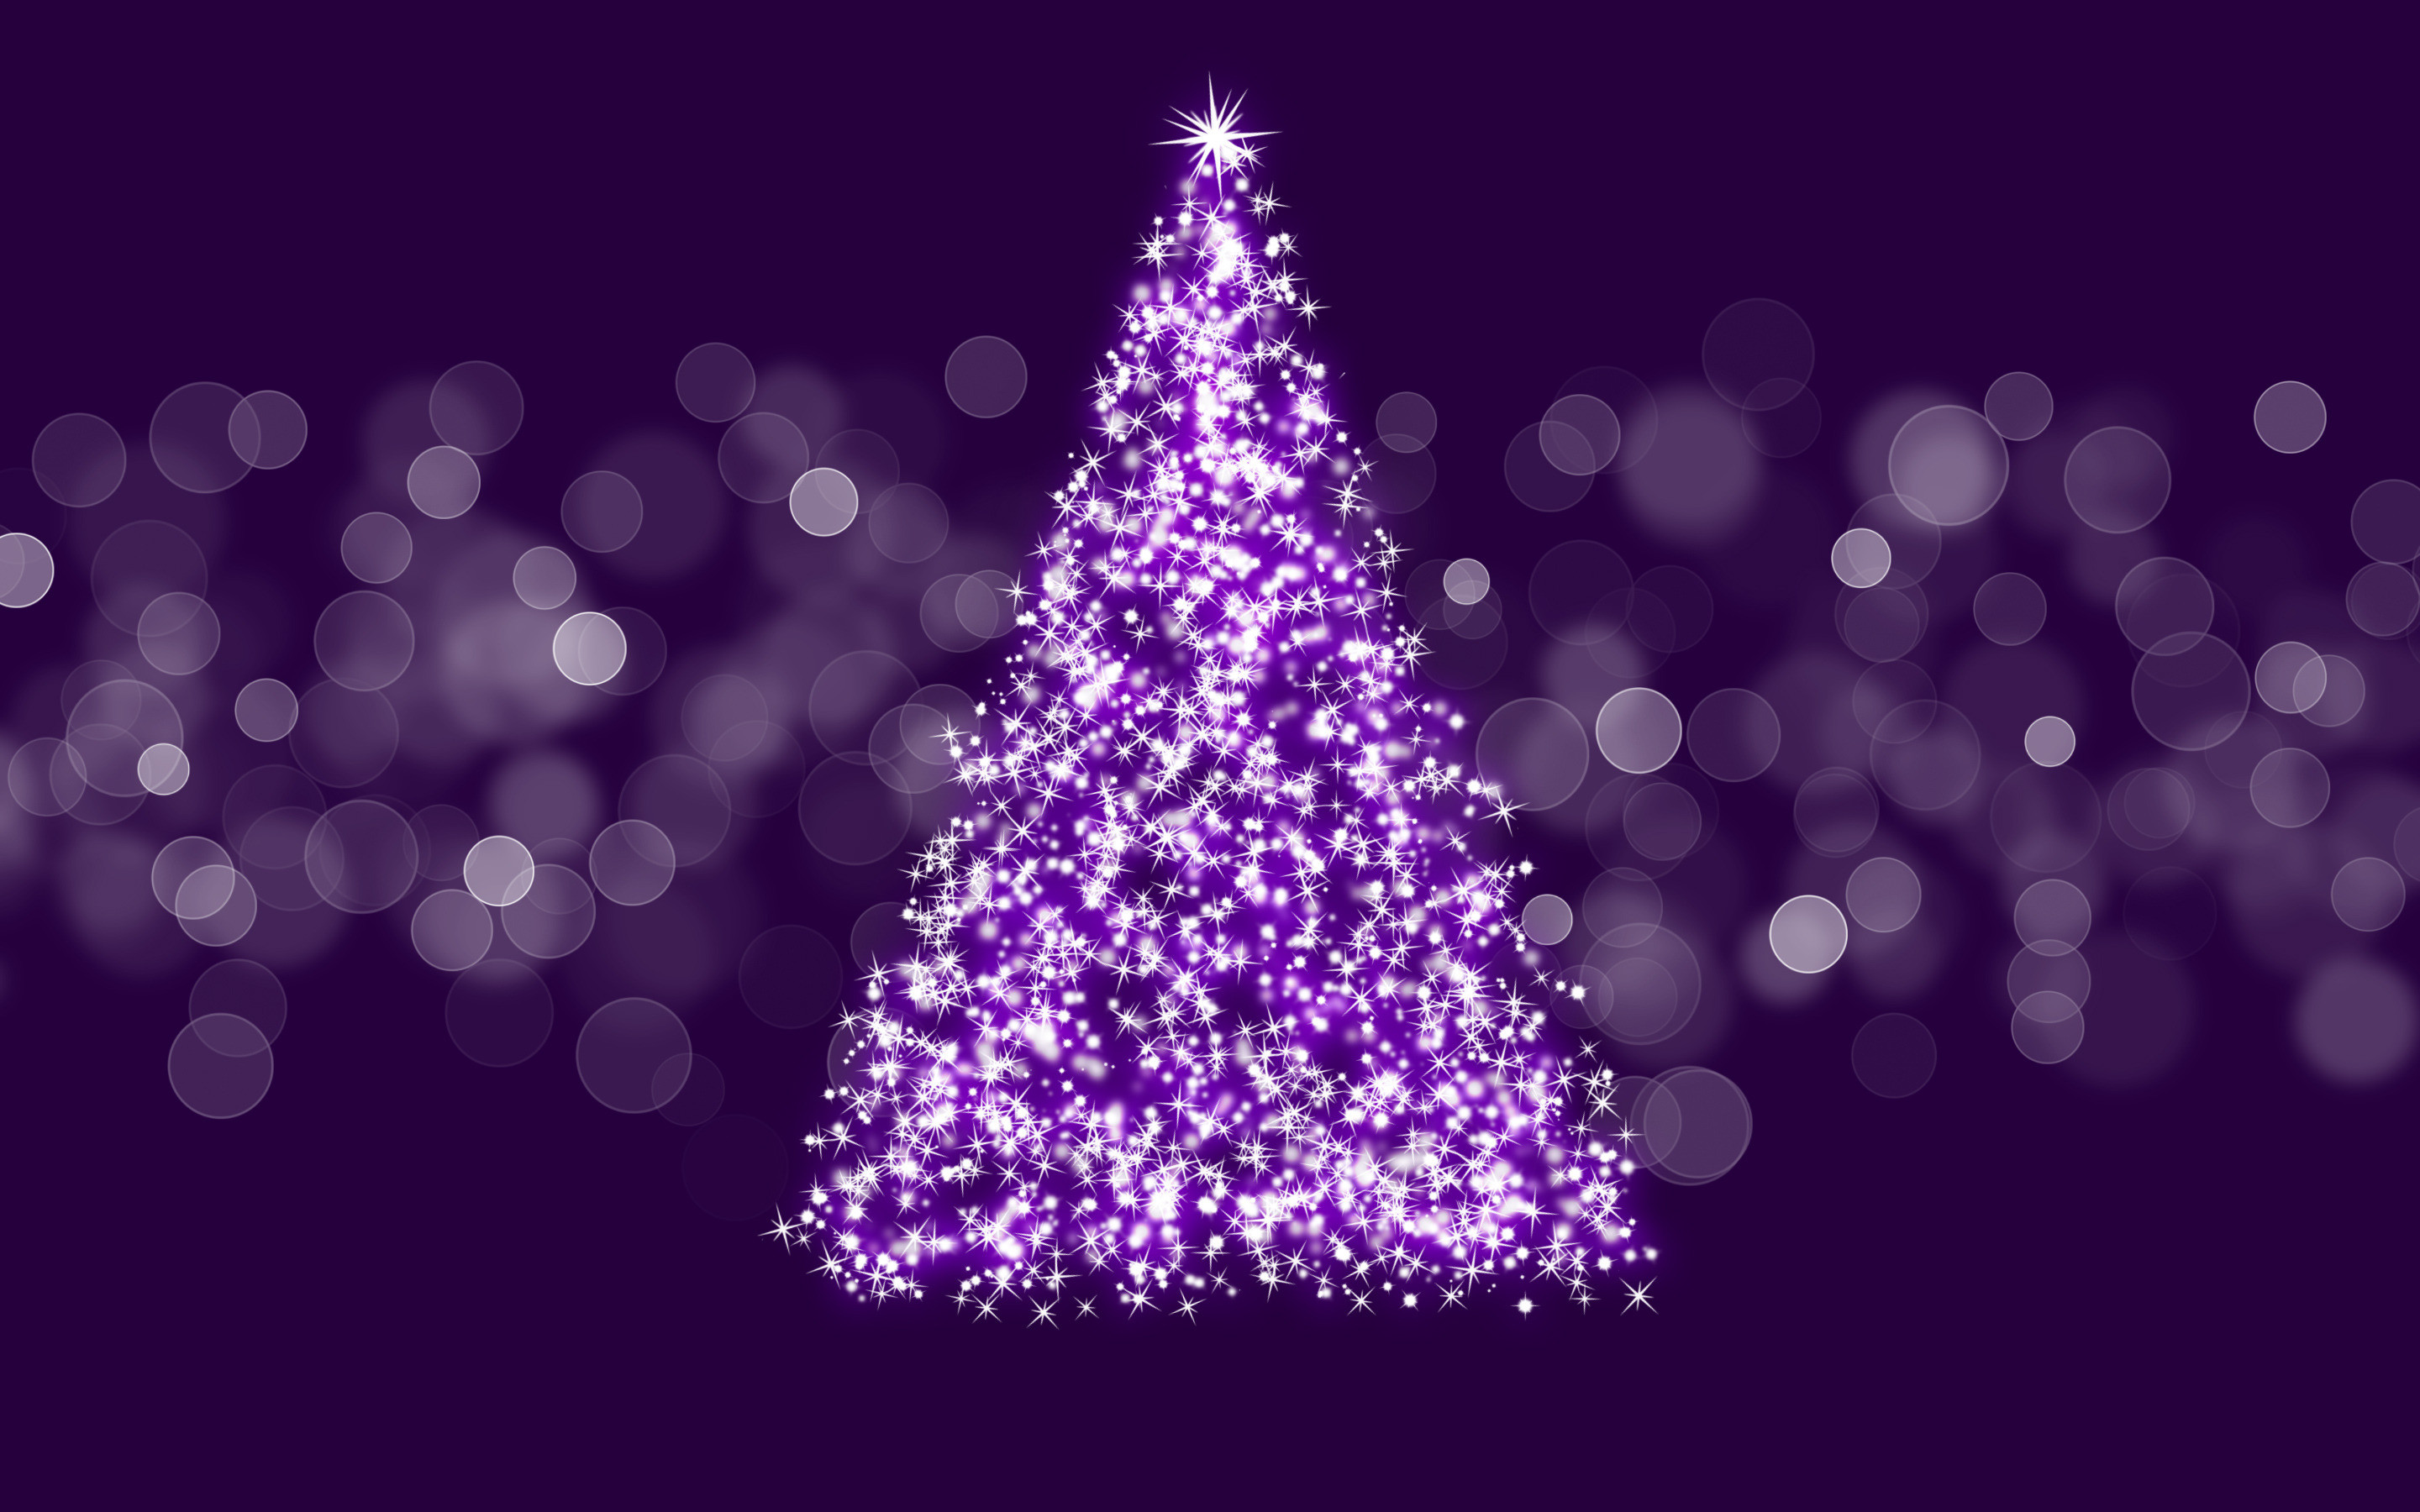 Christmas Tree Wallpapers For Wallpaper Images About Trees Toppers Tables  On Pinterest Purple And Silver Deco